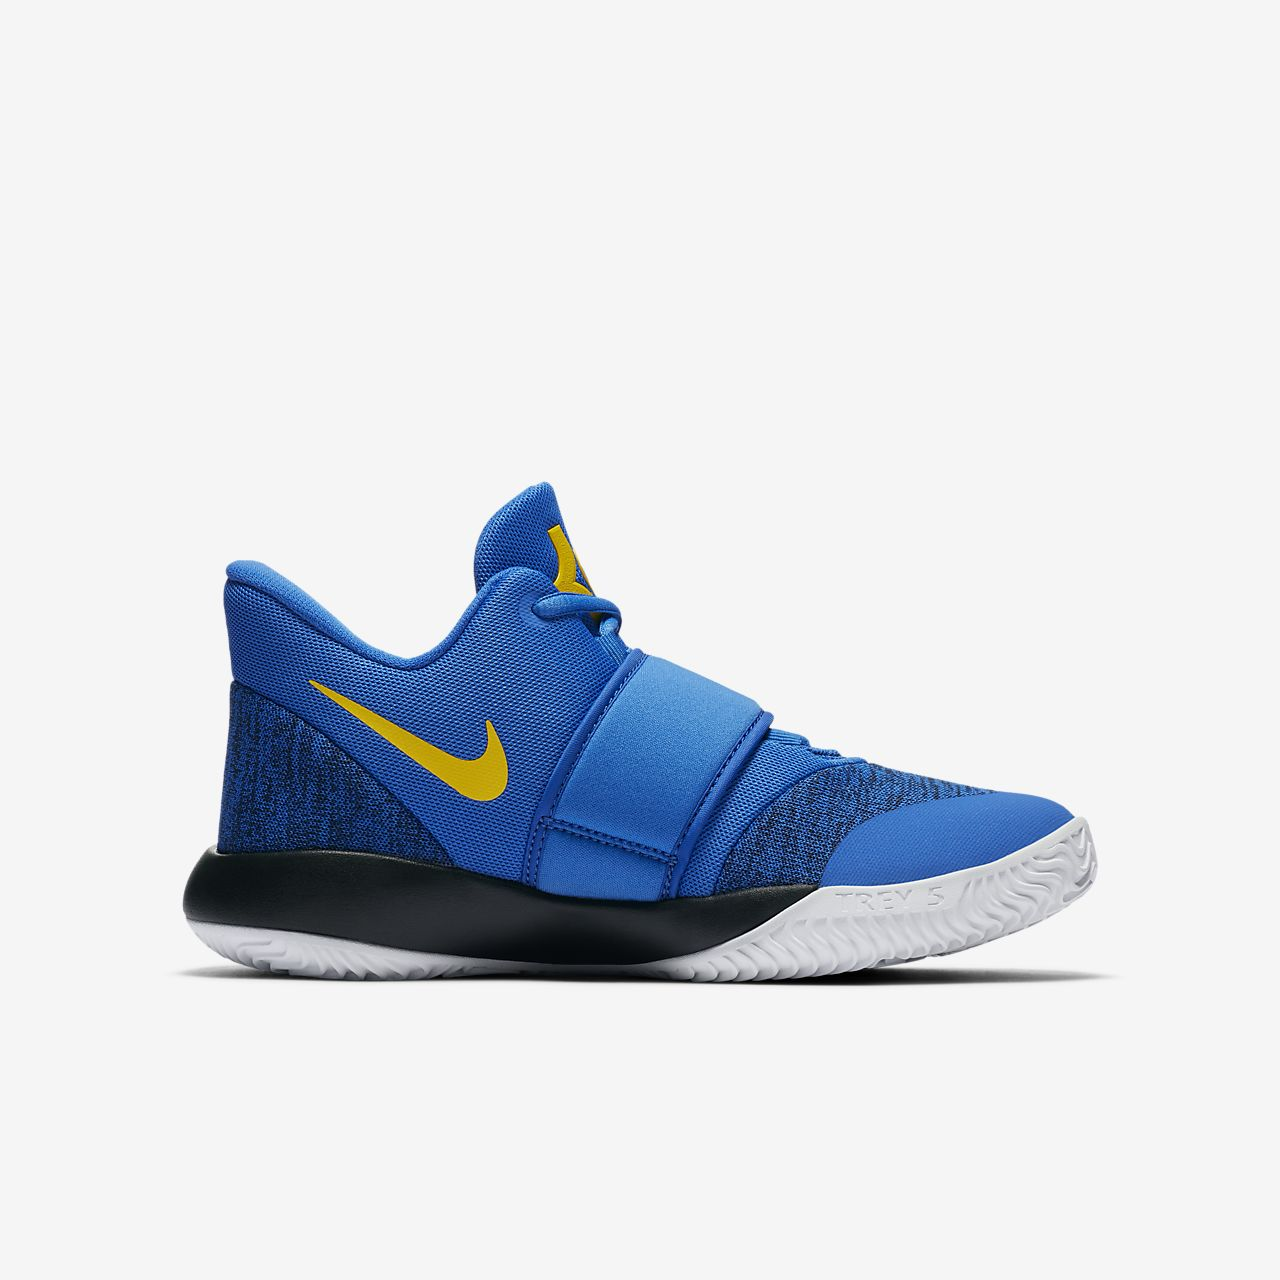 Nike Performance KD TREY 5 VI - Basketball shoes - signal blue/black/white/amarillo mNpRmJX